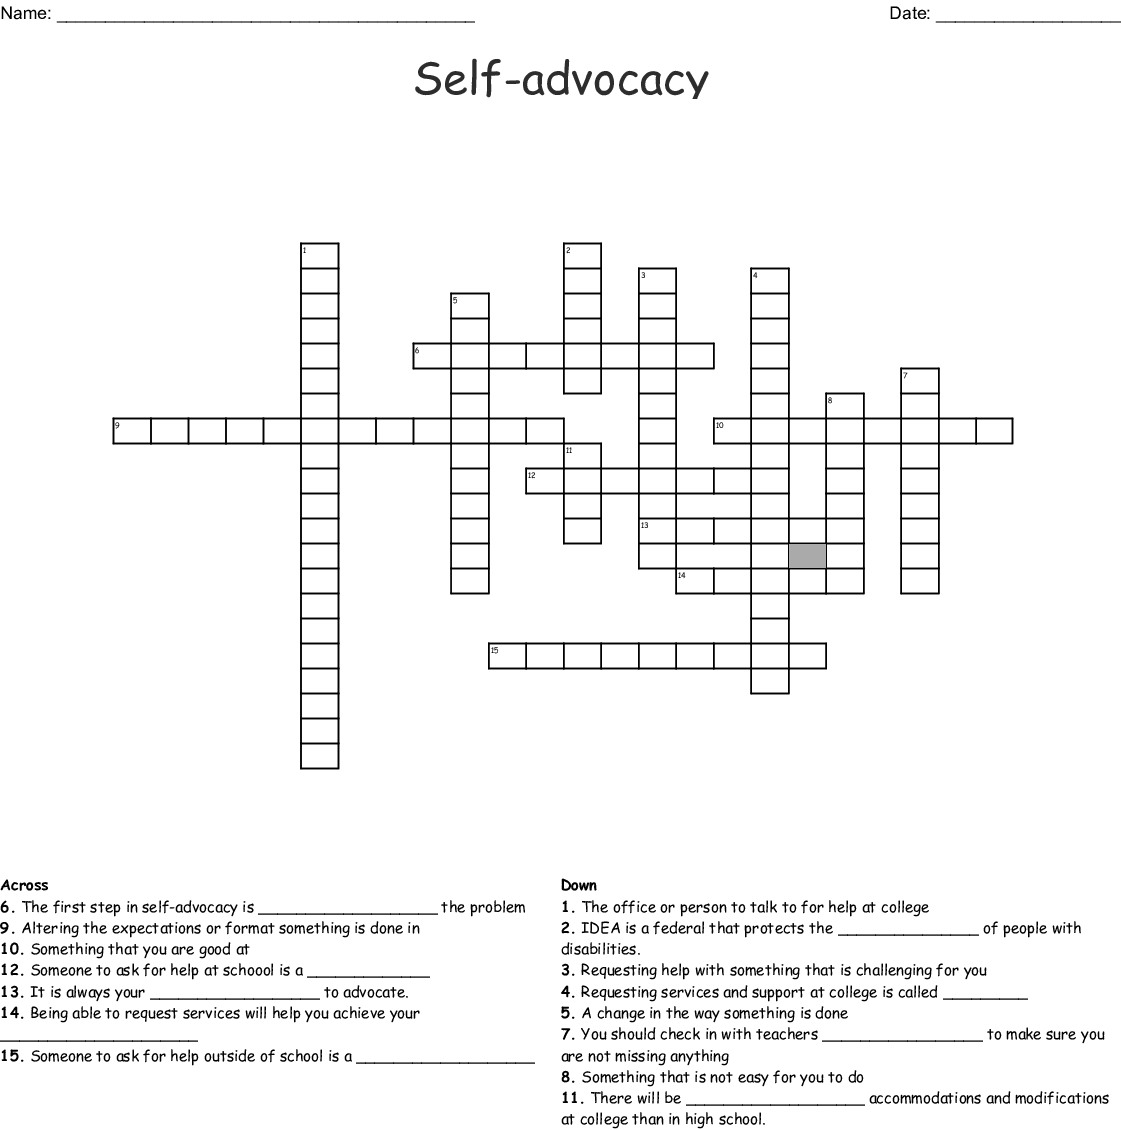 Self Advocacy Word Search - WordMint